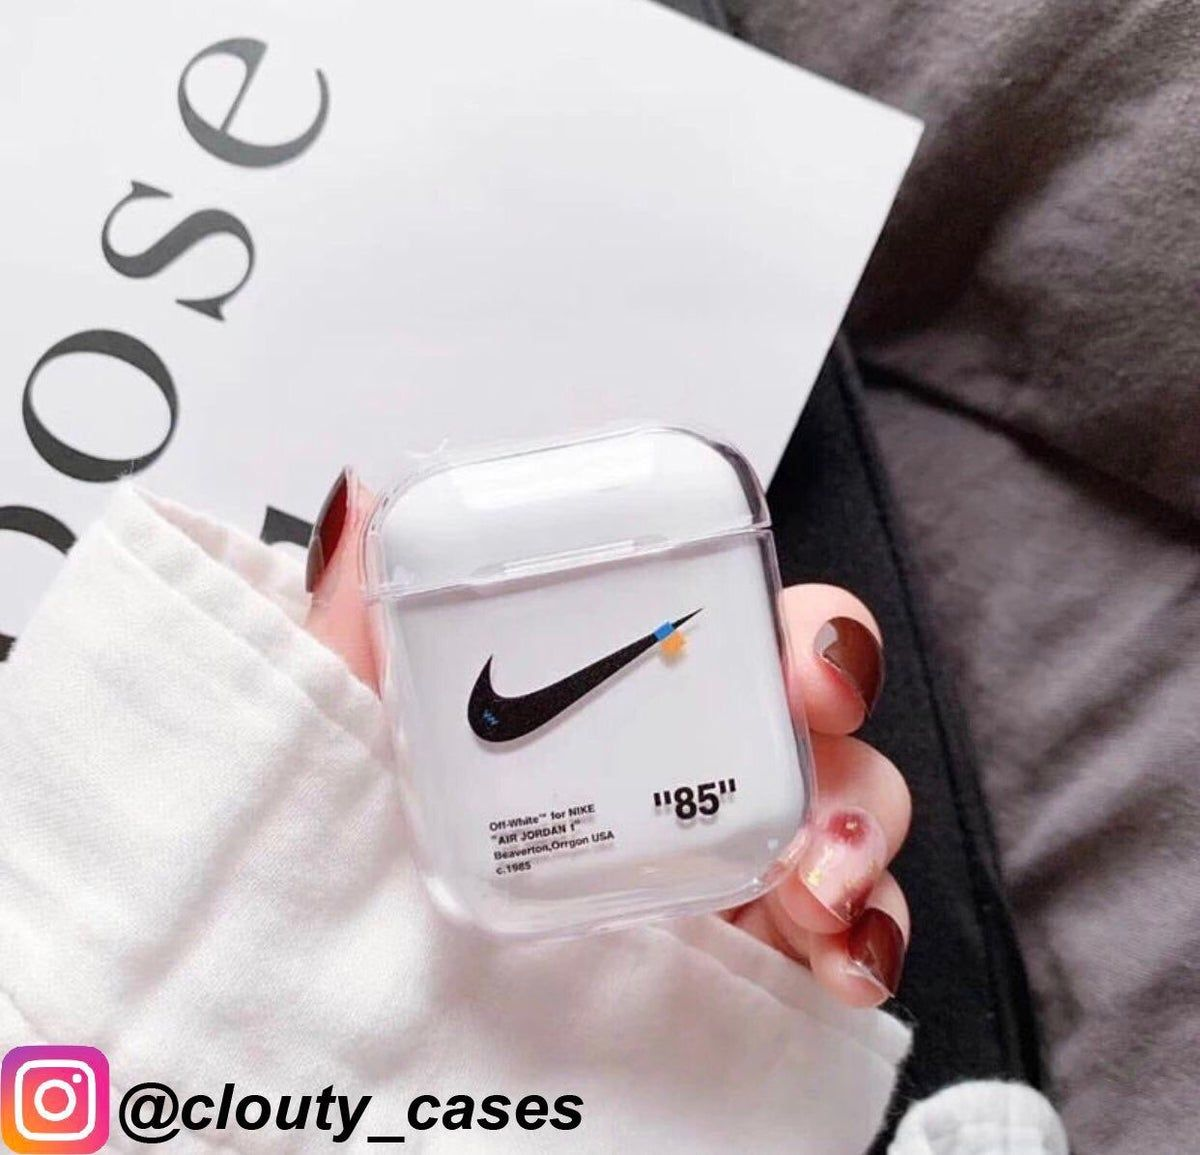 Off White Airpod Case | Earphone case, Airpod case